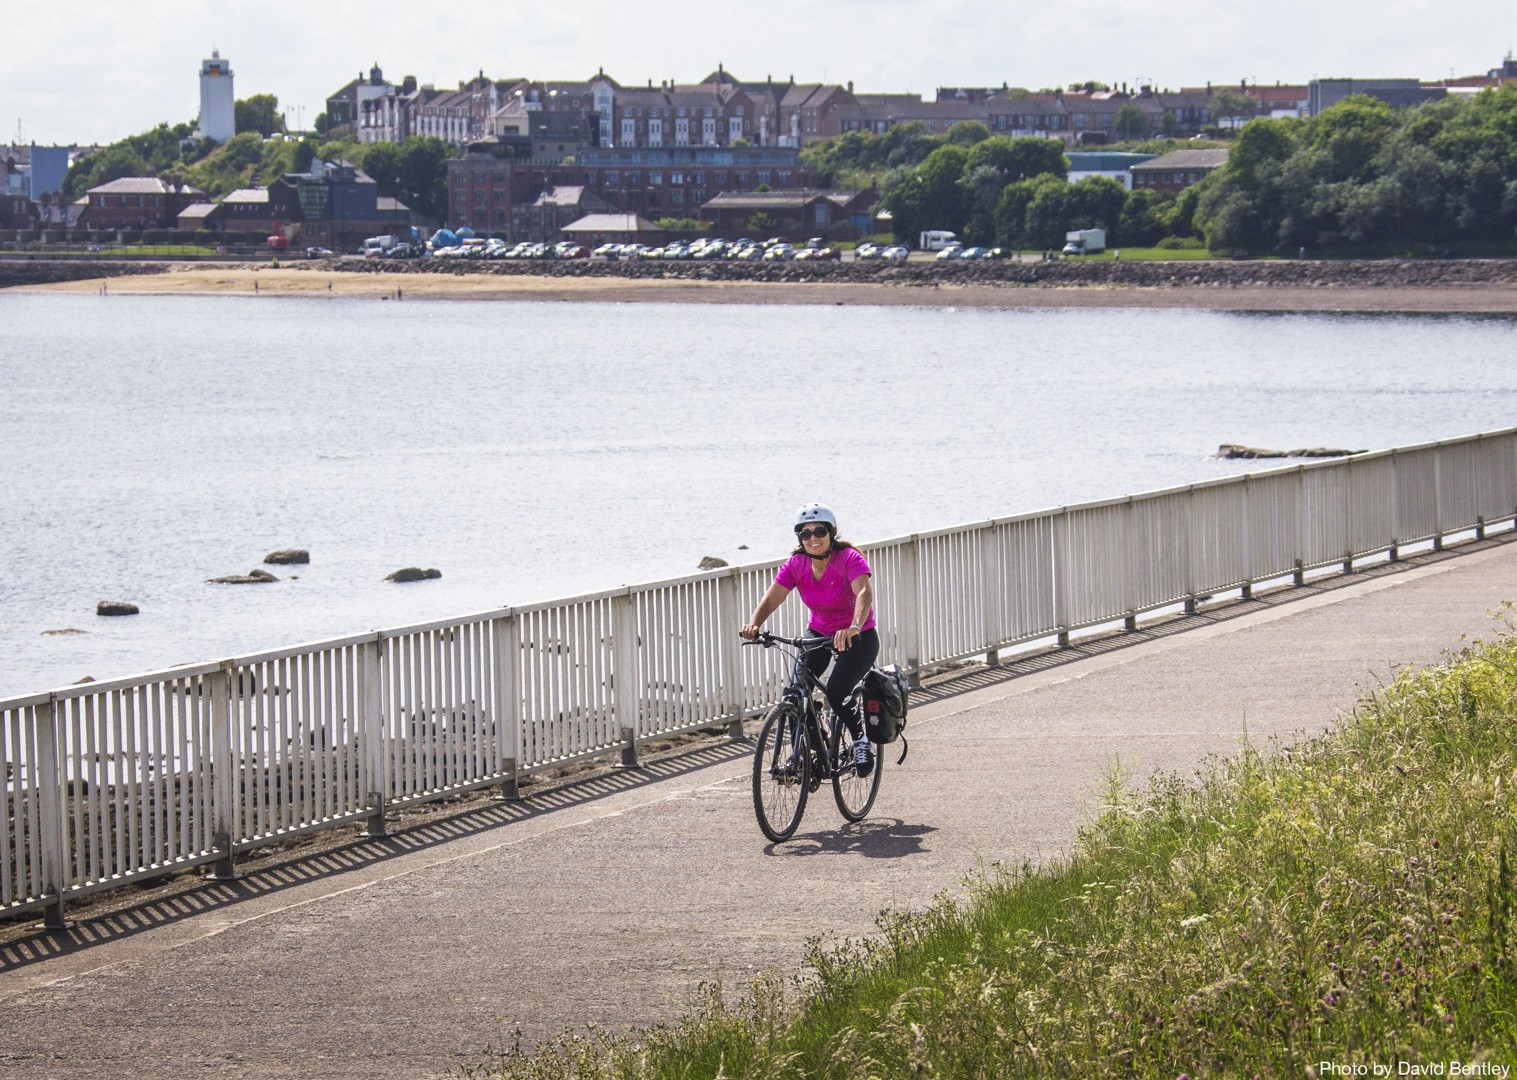 Self-Guided-Leisure-Cycling-Holiday-Hadrians-Cycleway-UK-Tynemouth.jpg - UK - Hadrian's Cycleway - 3 Days Cycling - Self-Guided Leisure Cycling Holiday - Leisure Cycling